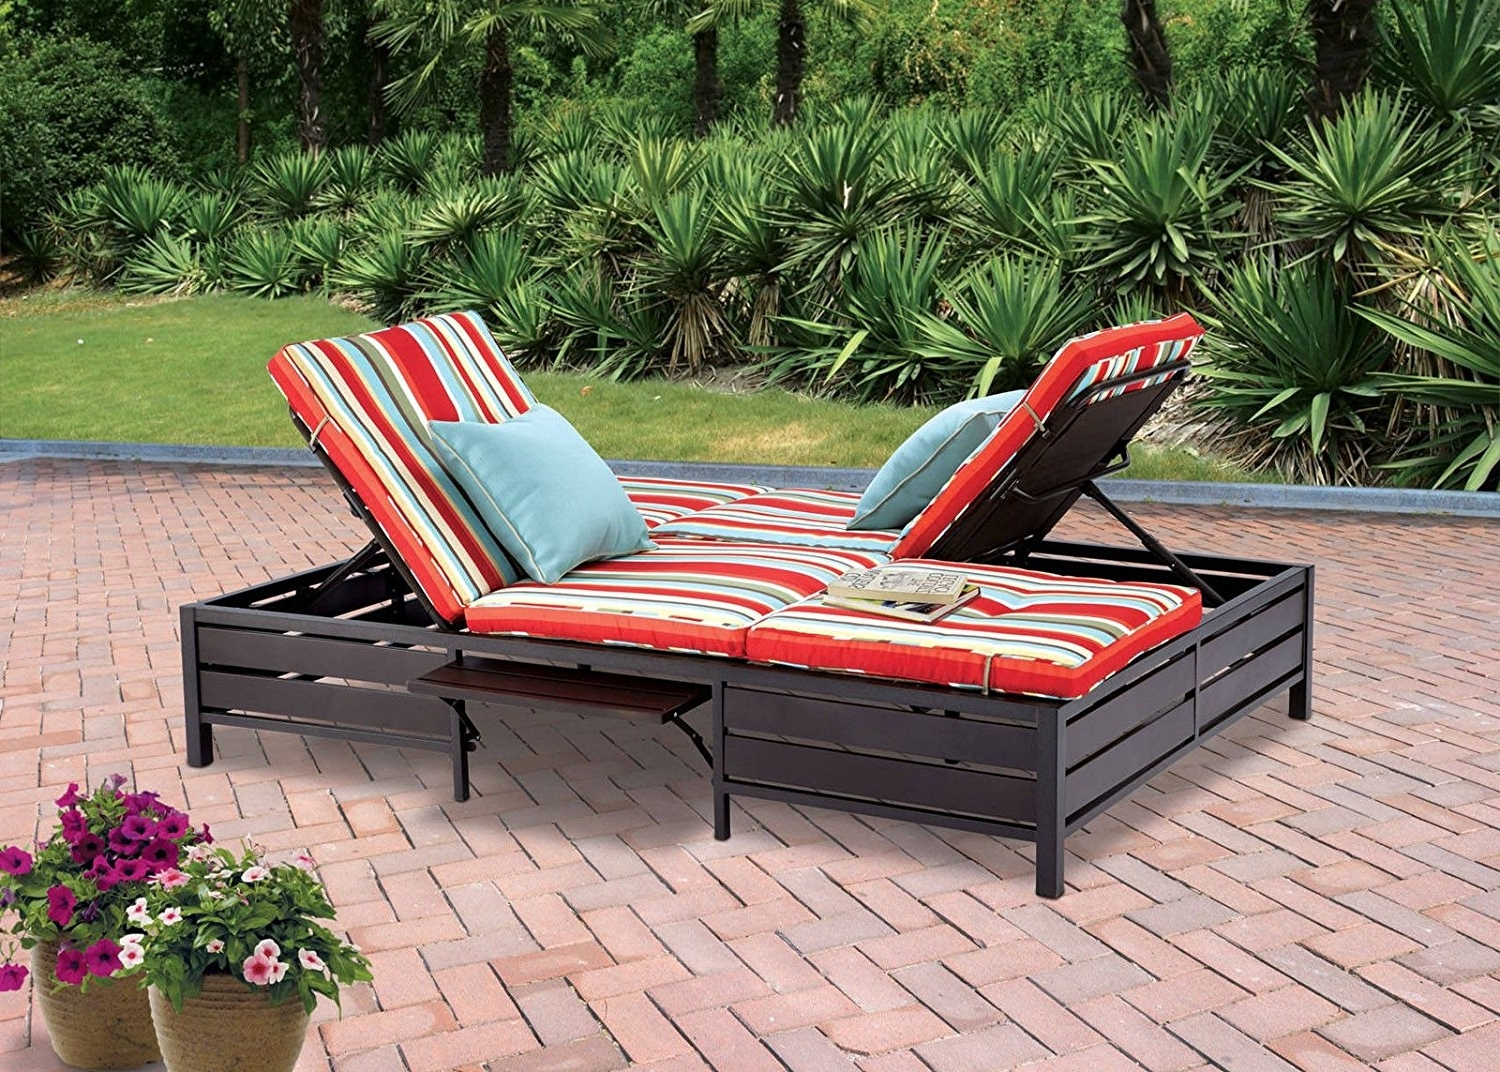 Widely Used Chaise Lounge Chairs At Walmart With Regard To Amazon : Double Chaise Lounger – This Red Stripe Outdoor (View 15 of 15)